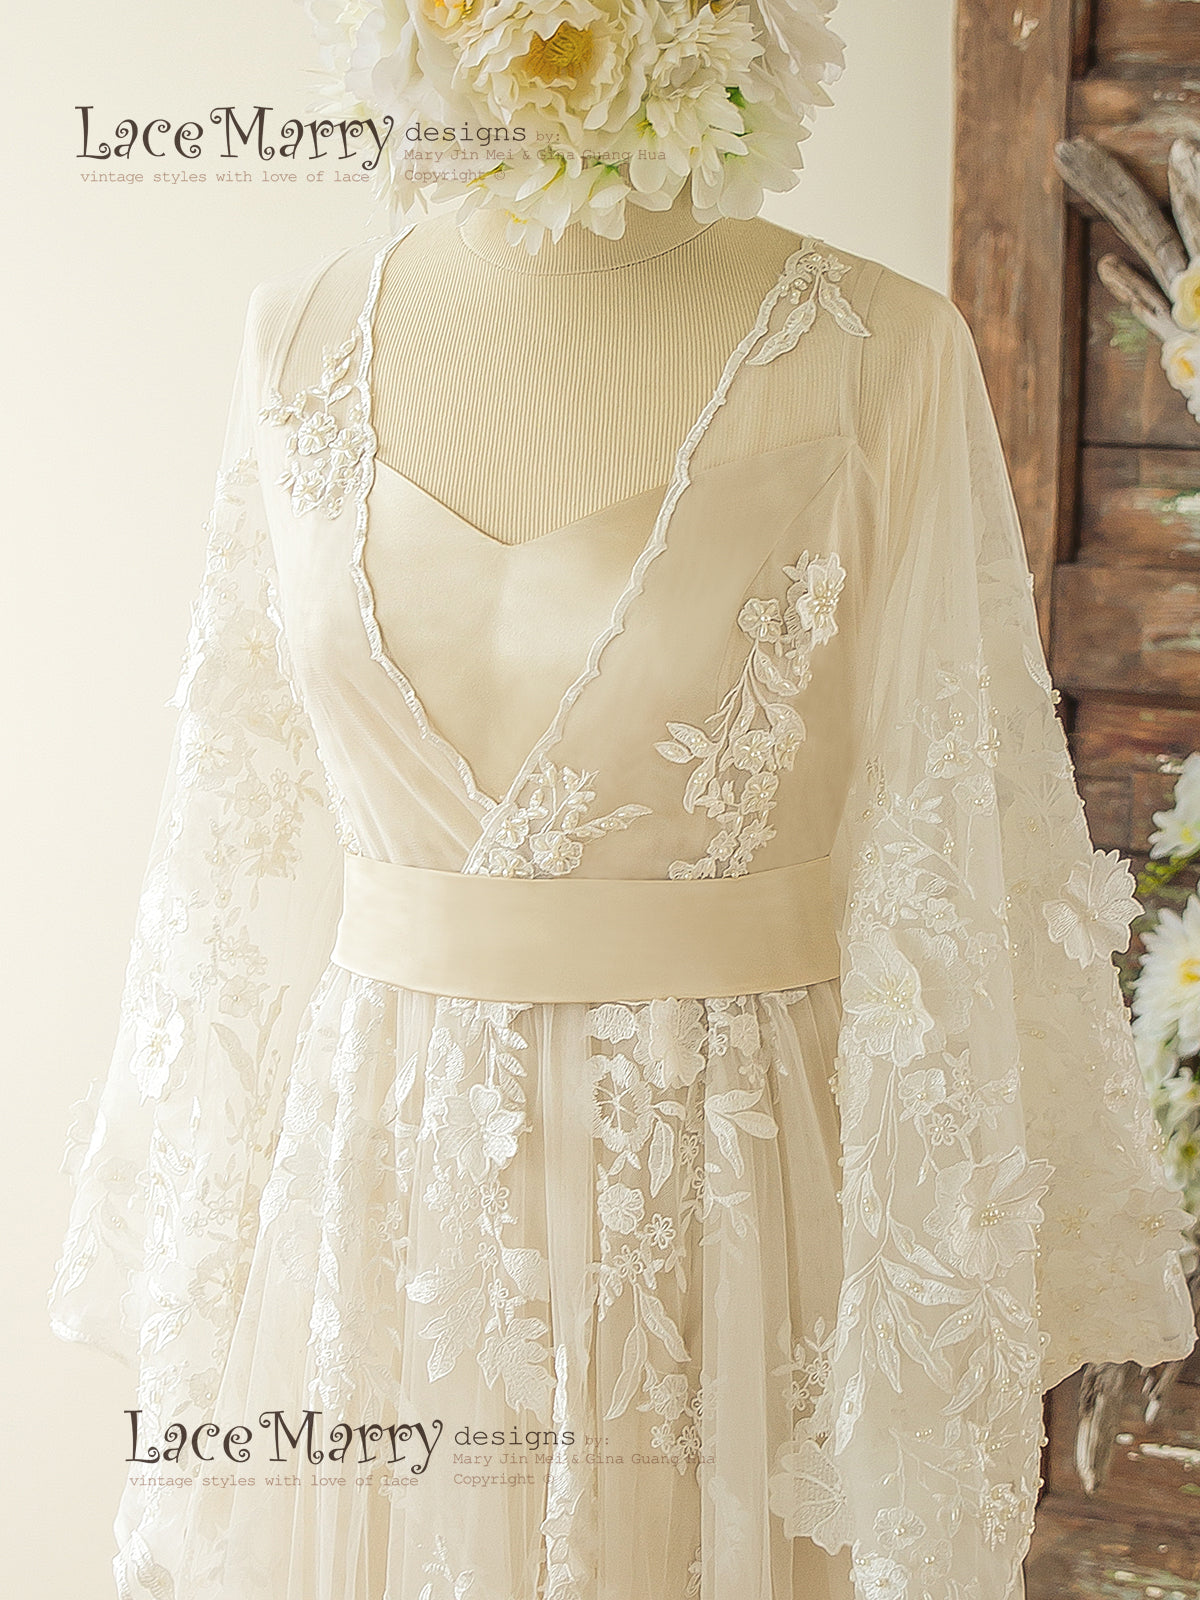 Bohemian Lace Wedding Dress With Ivory 3d Applique In Kaftan Style Lacemarry